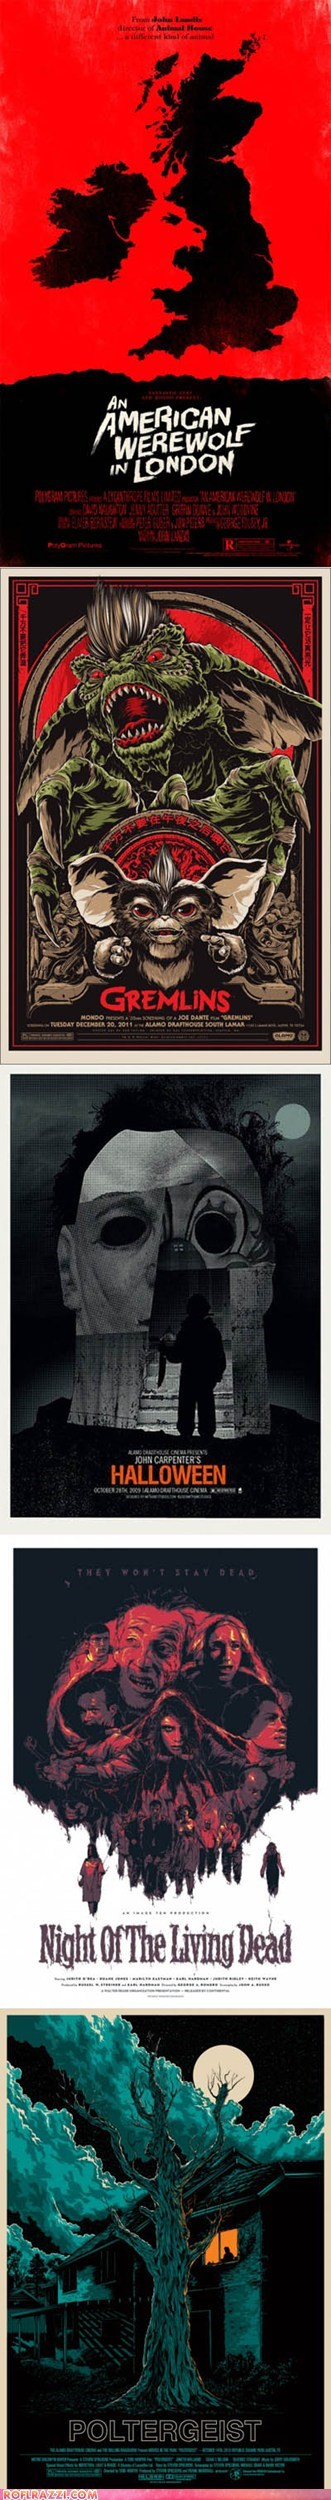 art,creepy,Movie,poster